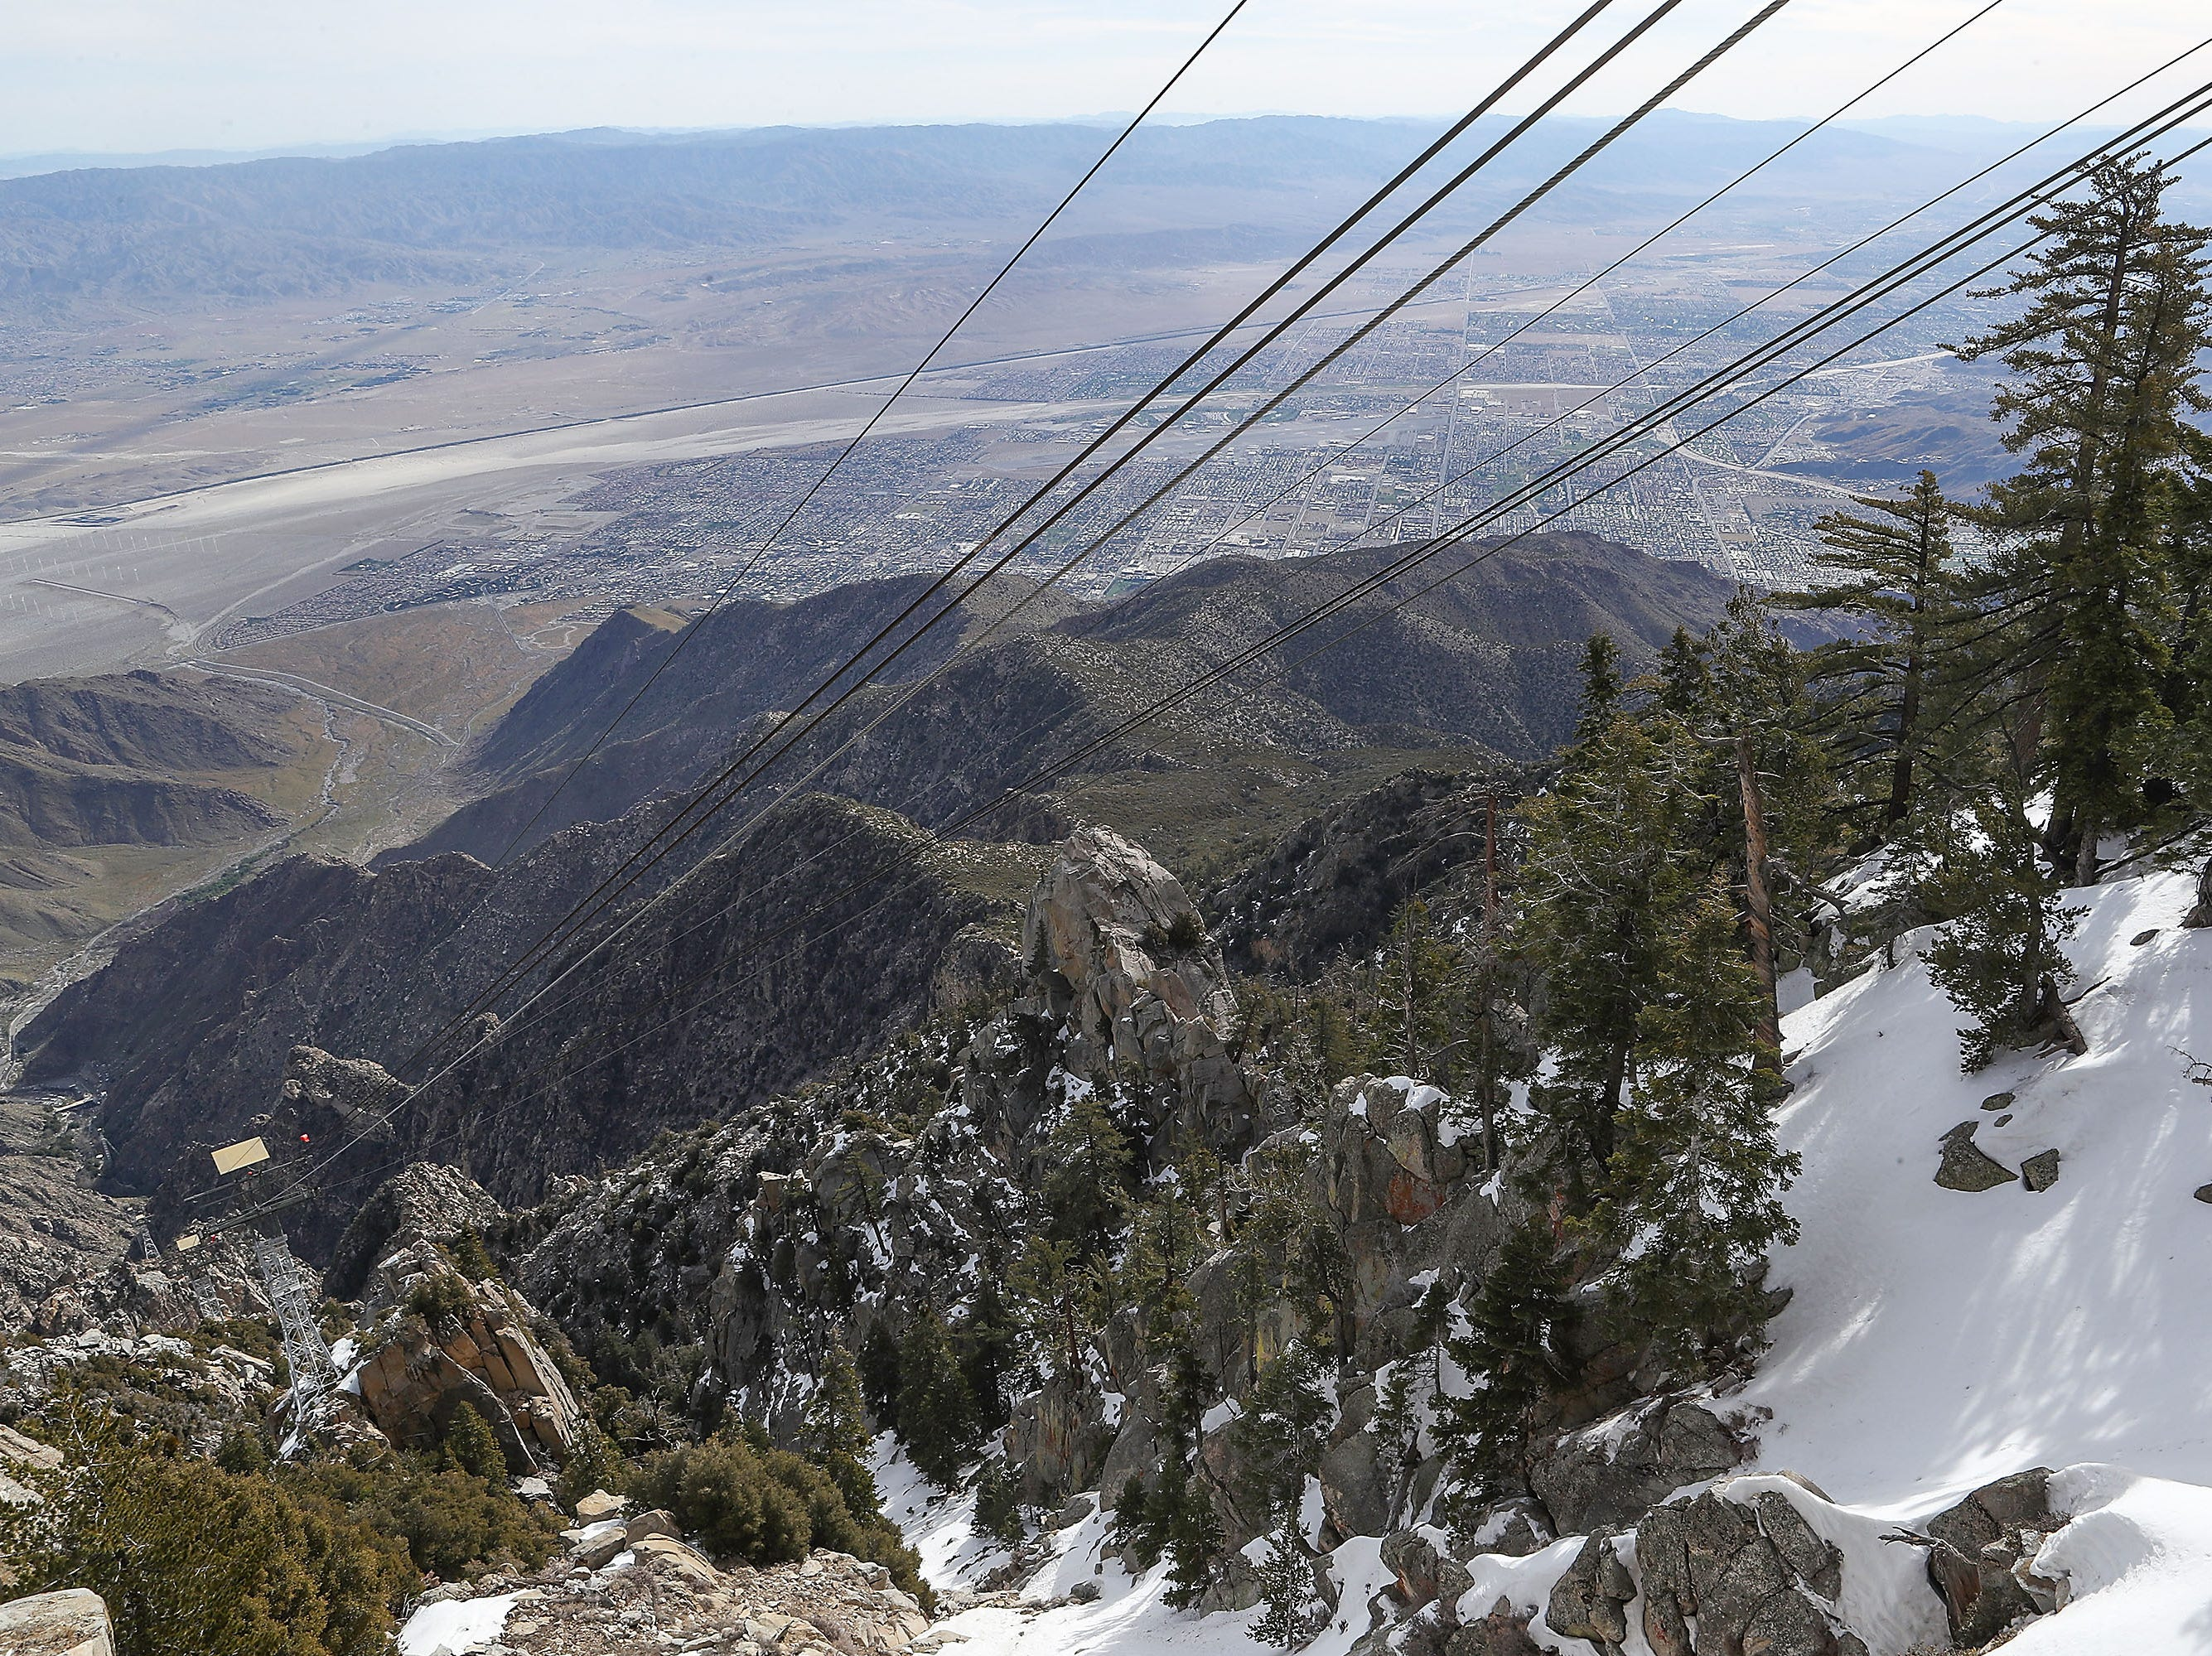 The top of Mount San Jacinto still has snow at the Palm Springs Aerial Tramway, April 1, 2019.